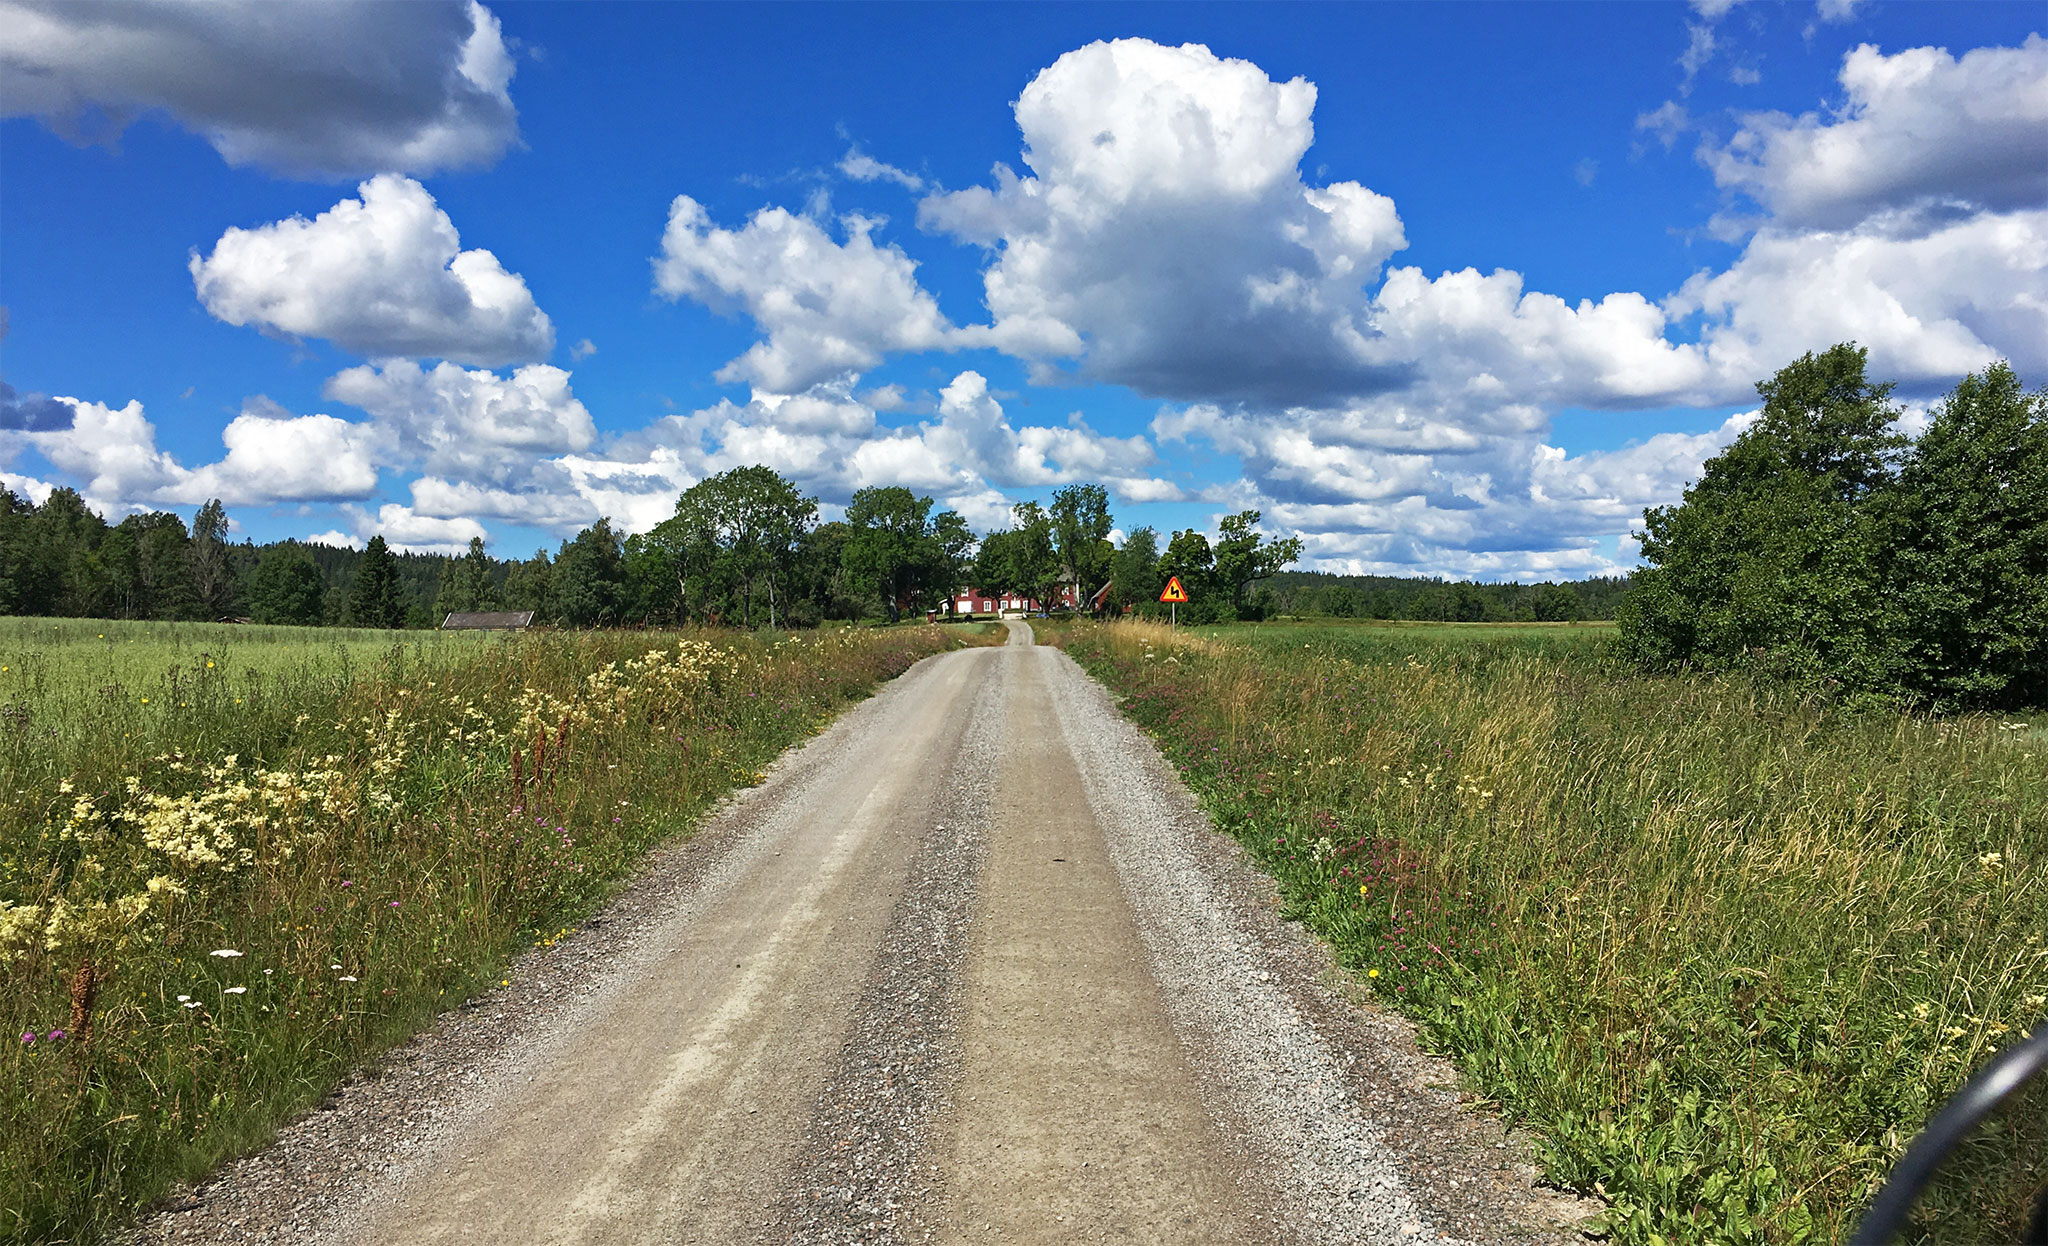 Swedish countryside seen from backroads, here on gravel which my bike handles very well even with luggage.